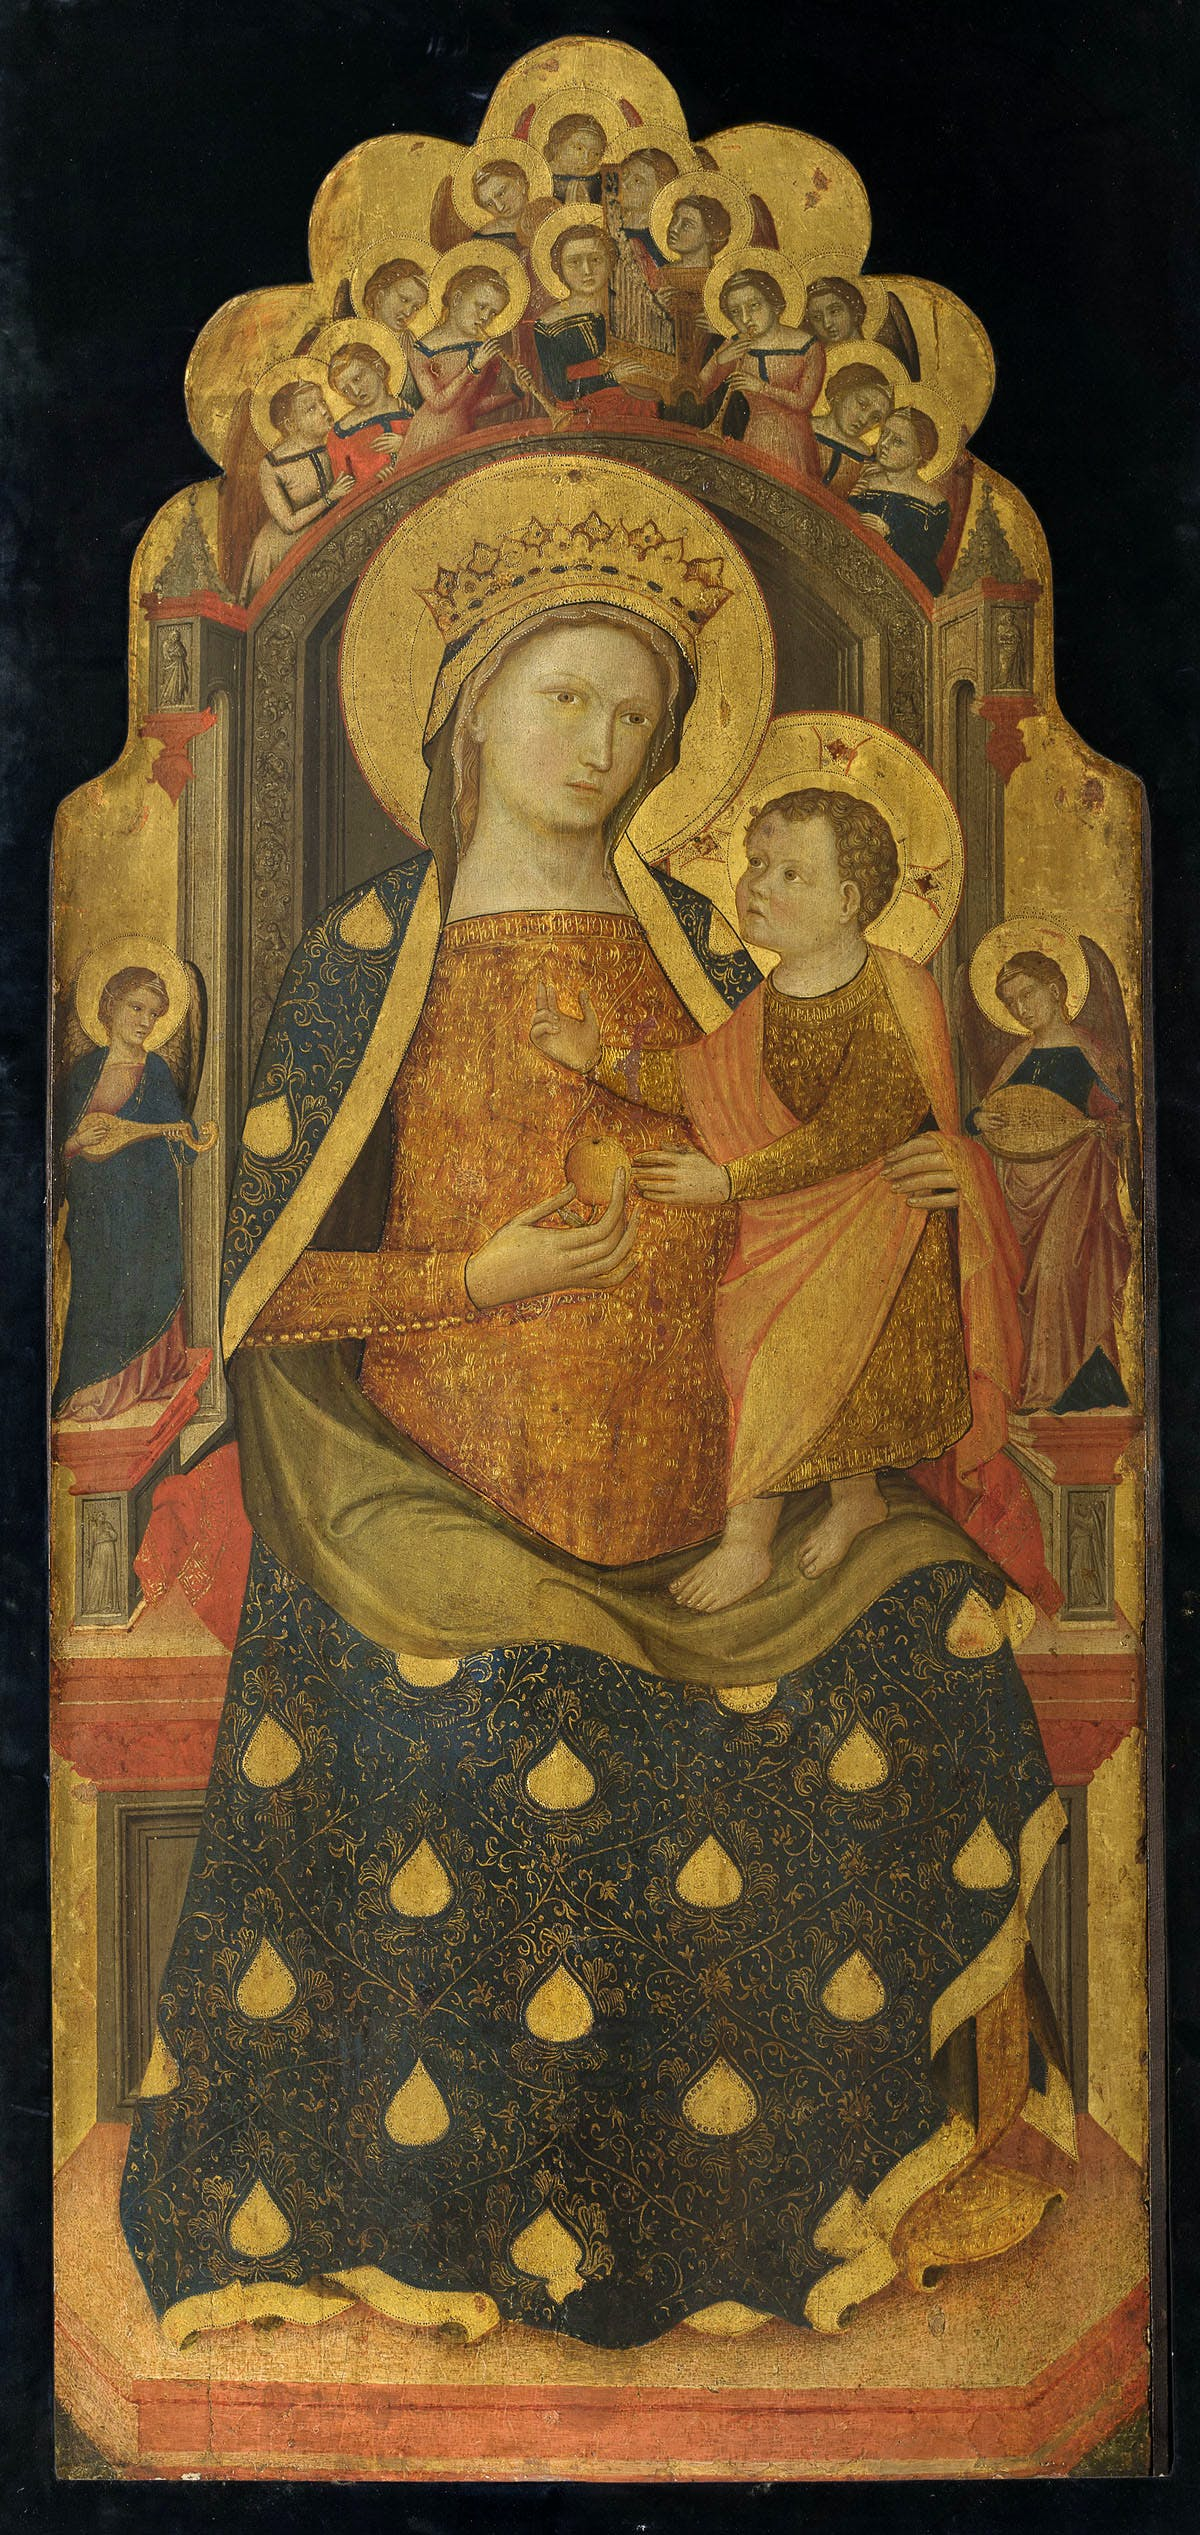 (after 1385), Stefano di Sant'Agnese